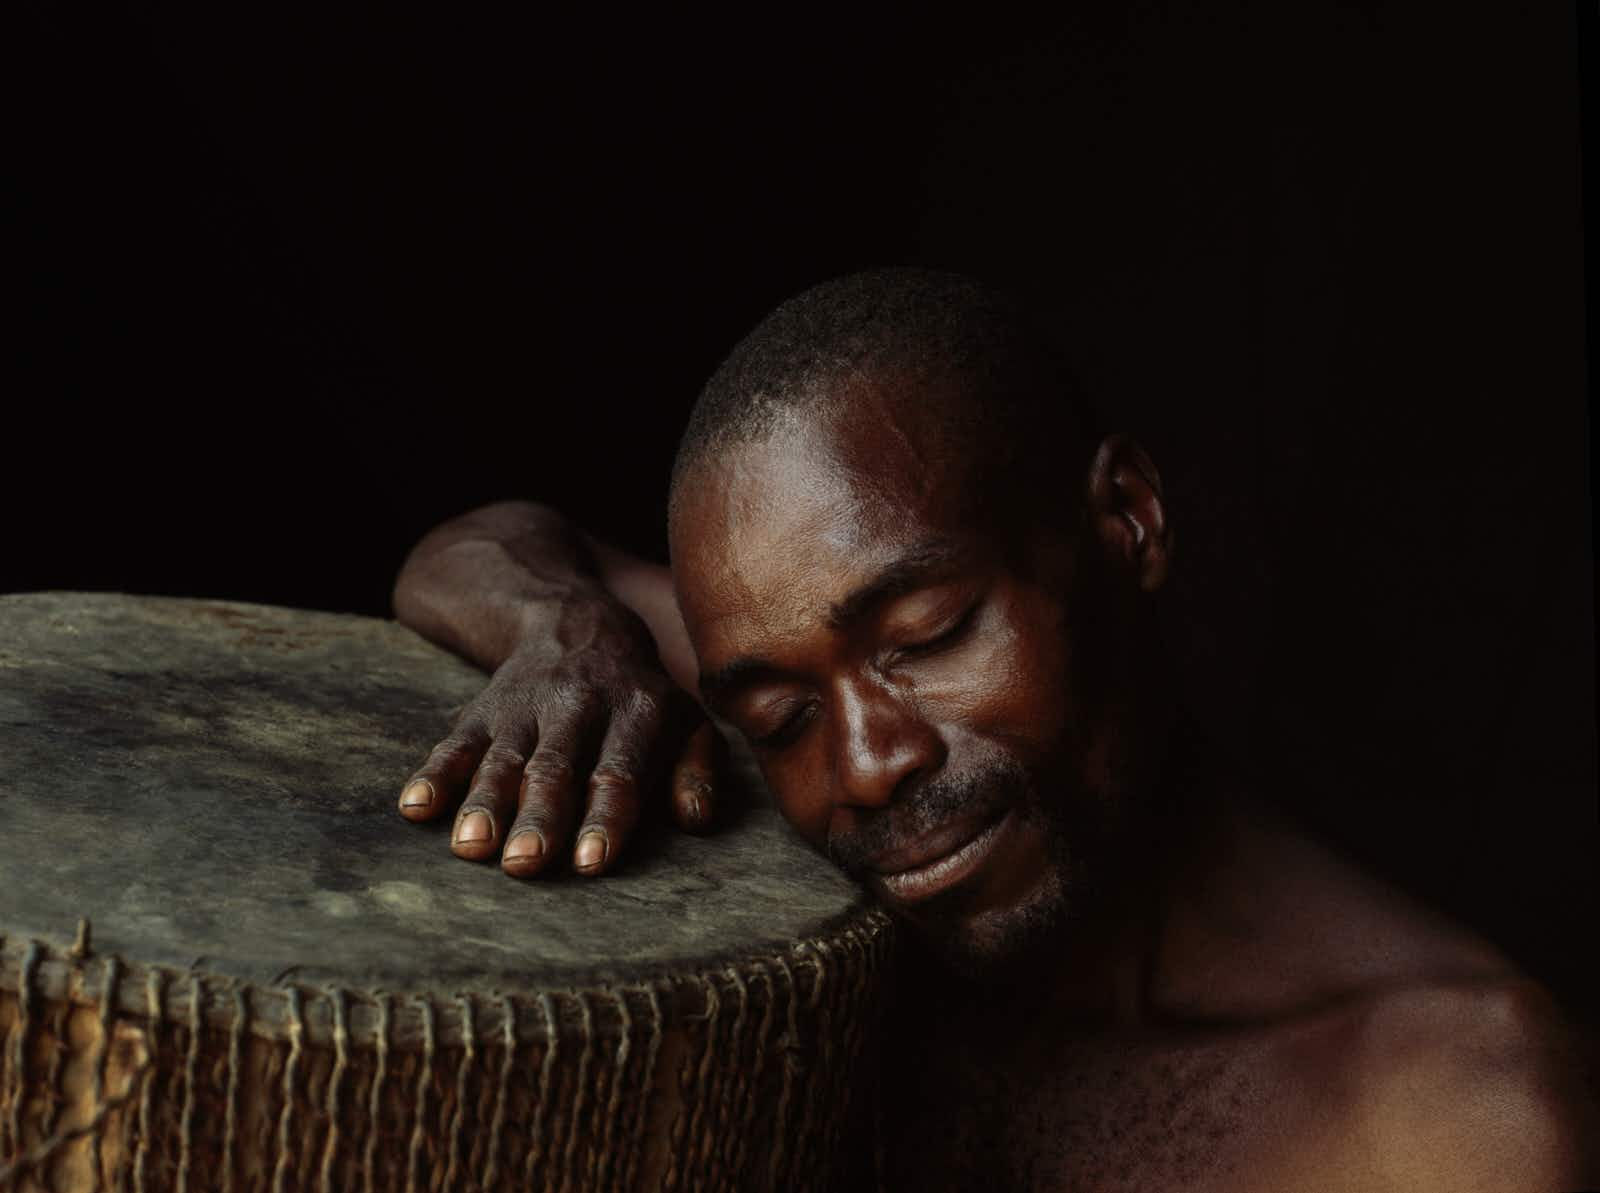 A Batwa drummer happily lost in his dreams © Harry Hook / Getty Images